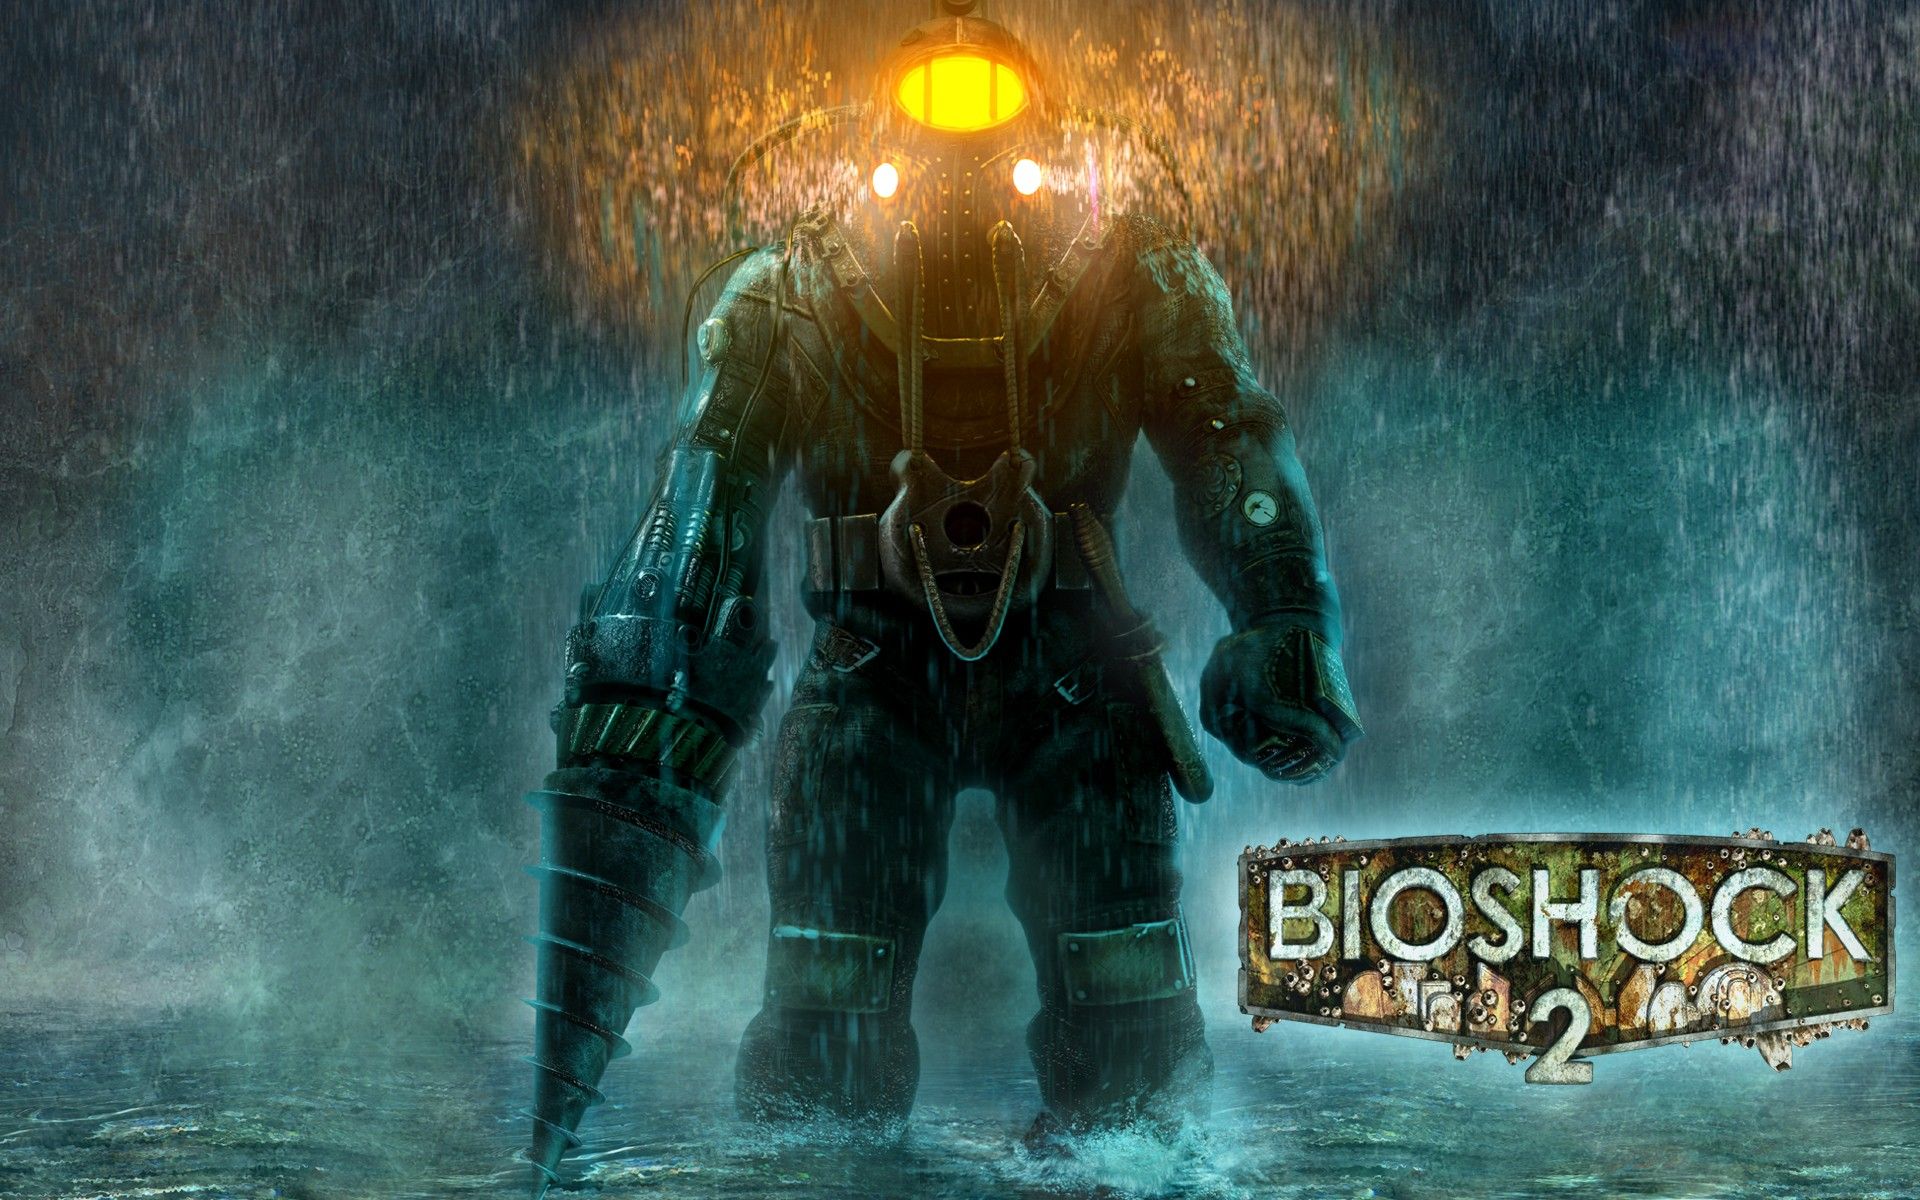 bioshock 2 sea of dreams скафандр огни